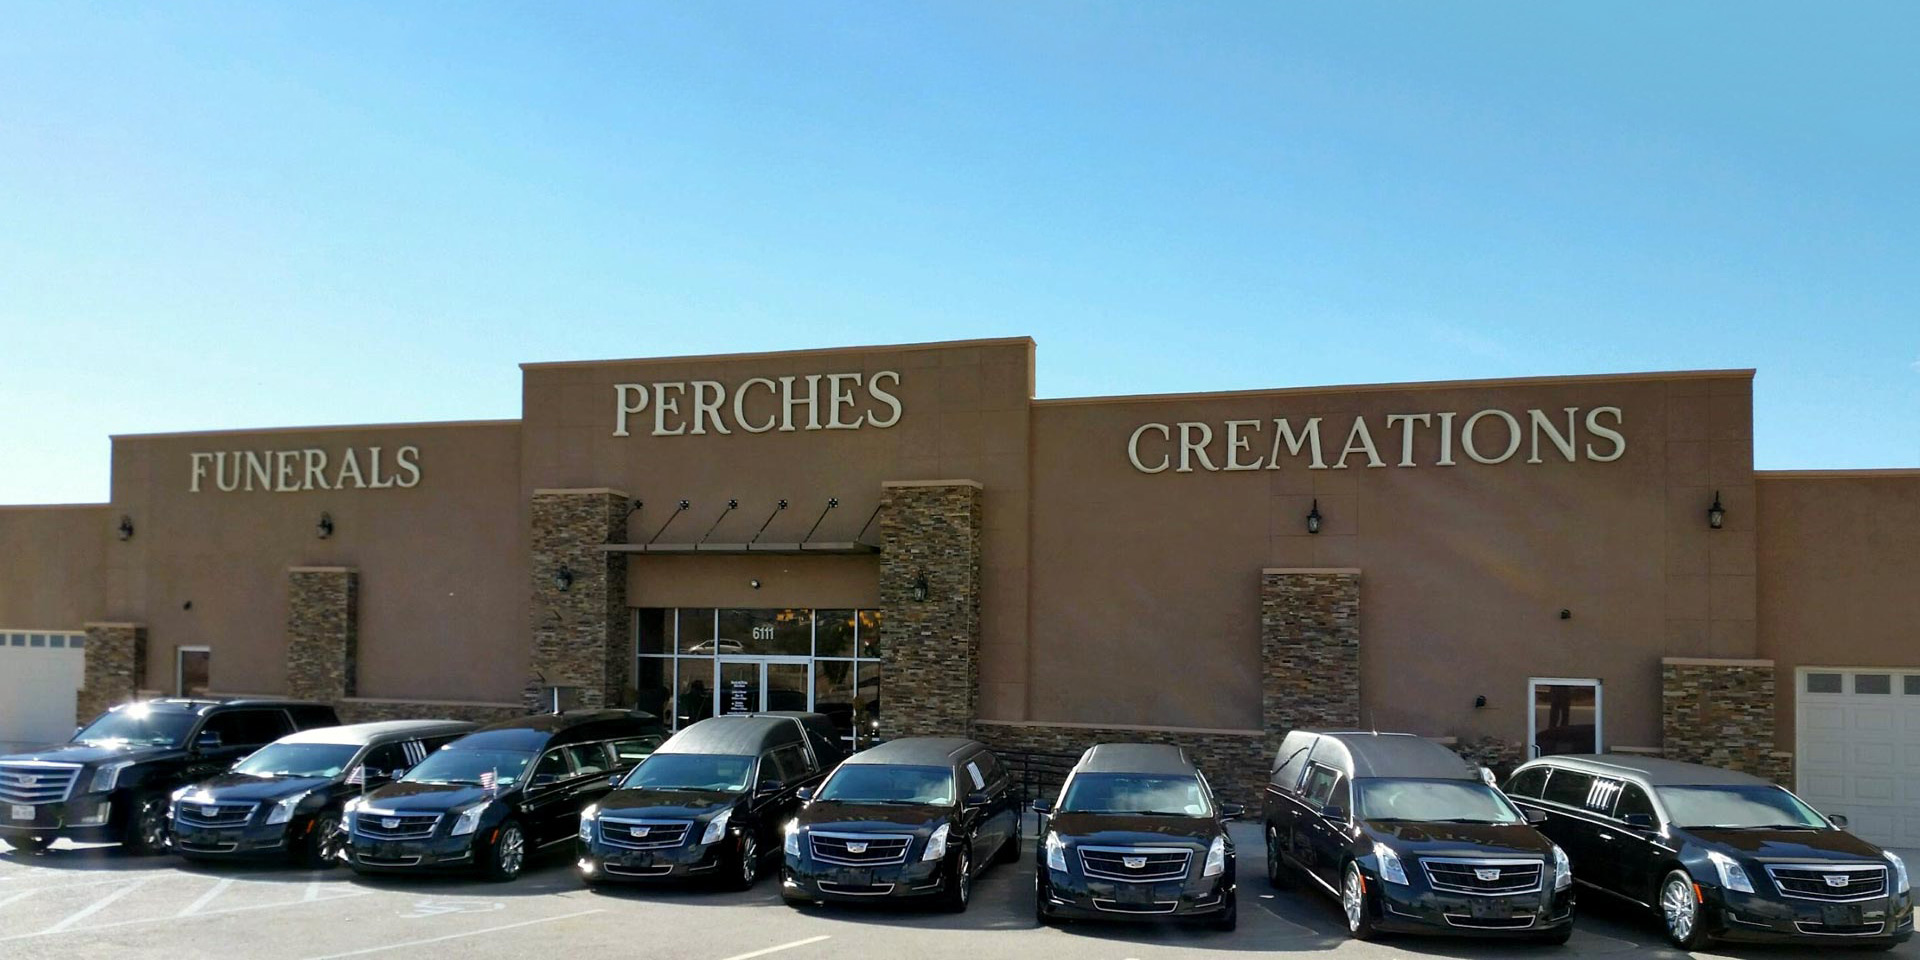 Perches Funeral Homes | El Paso, TX Funeral Home & Cremation